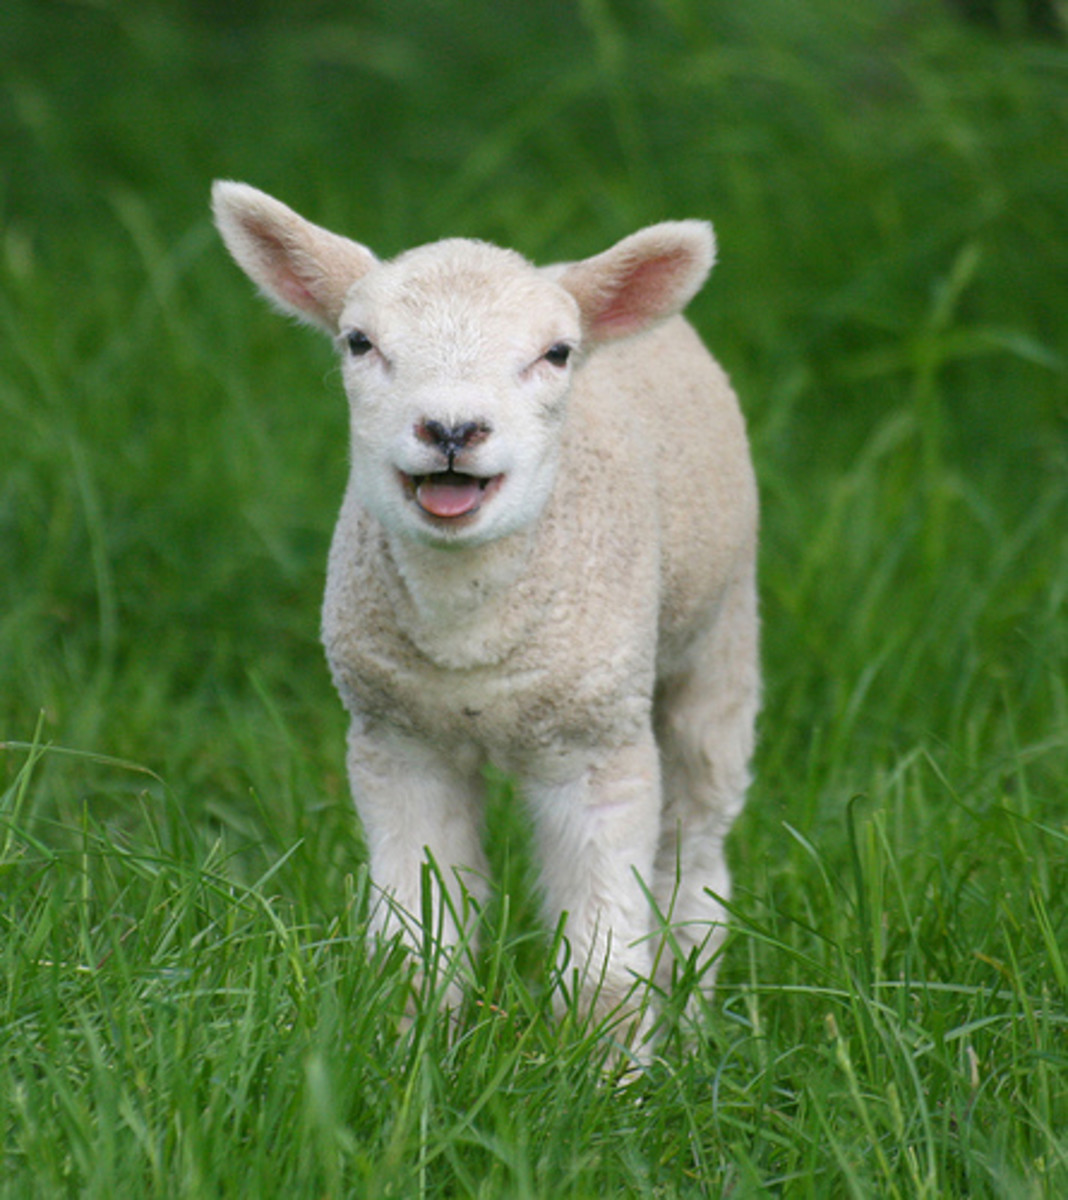 Mukti the Lamb Comes of Age: A Short Story